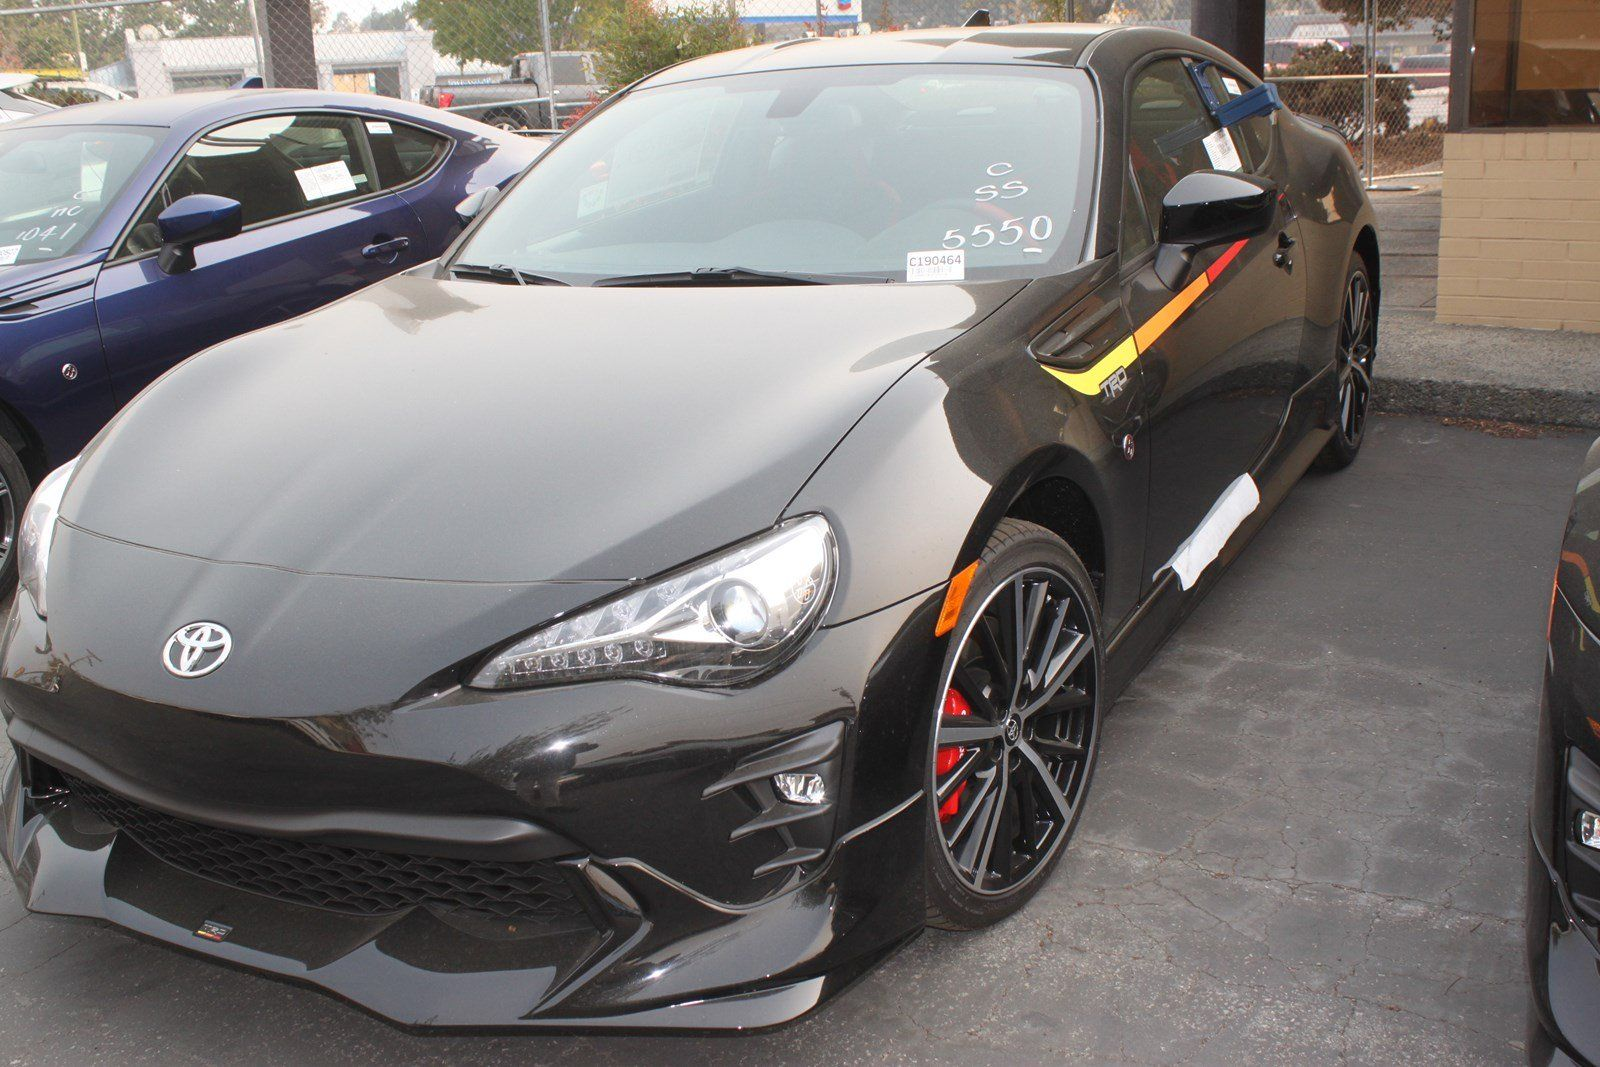 2019 Toyota Gt 86 2019 Toyota 86 Gt Automatic 2019 Toyota 86 Gt Black 2019 Toyota 86 Gt Blue 2019 Toyota 86 Gt Engine 2019 Toyota 86 Gt Interior 2019 Toy